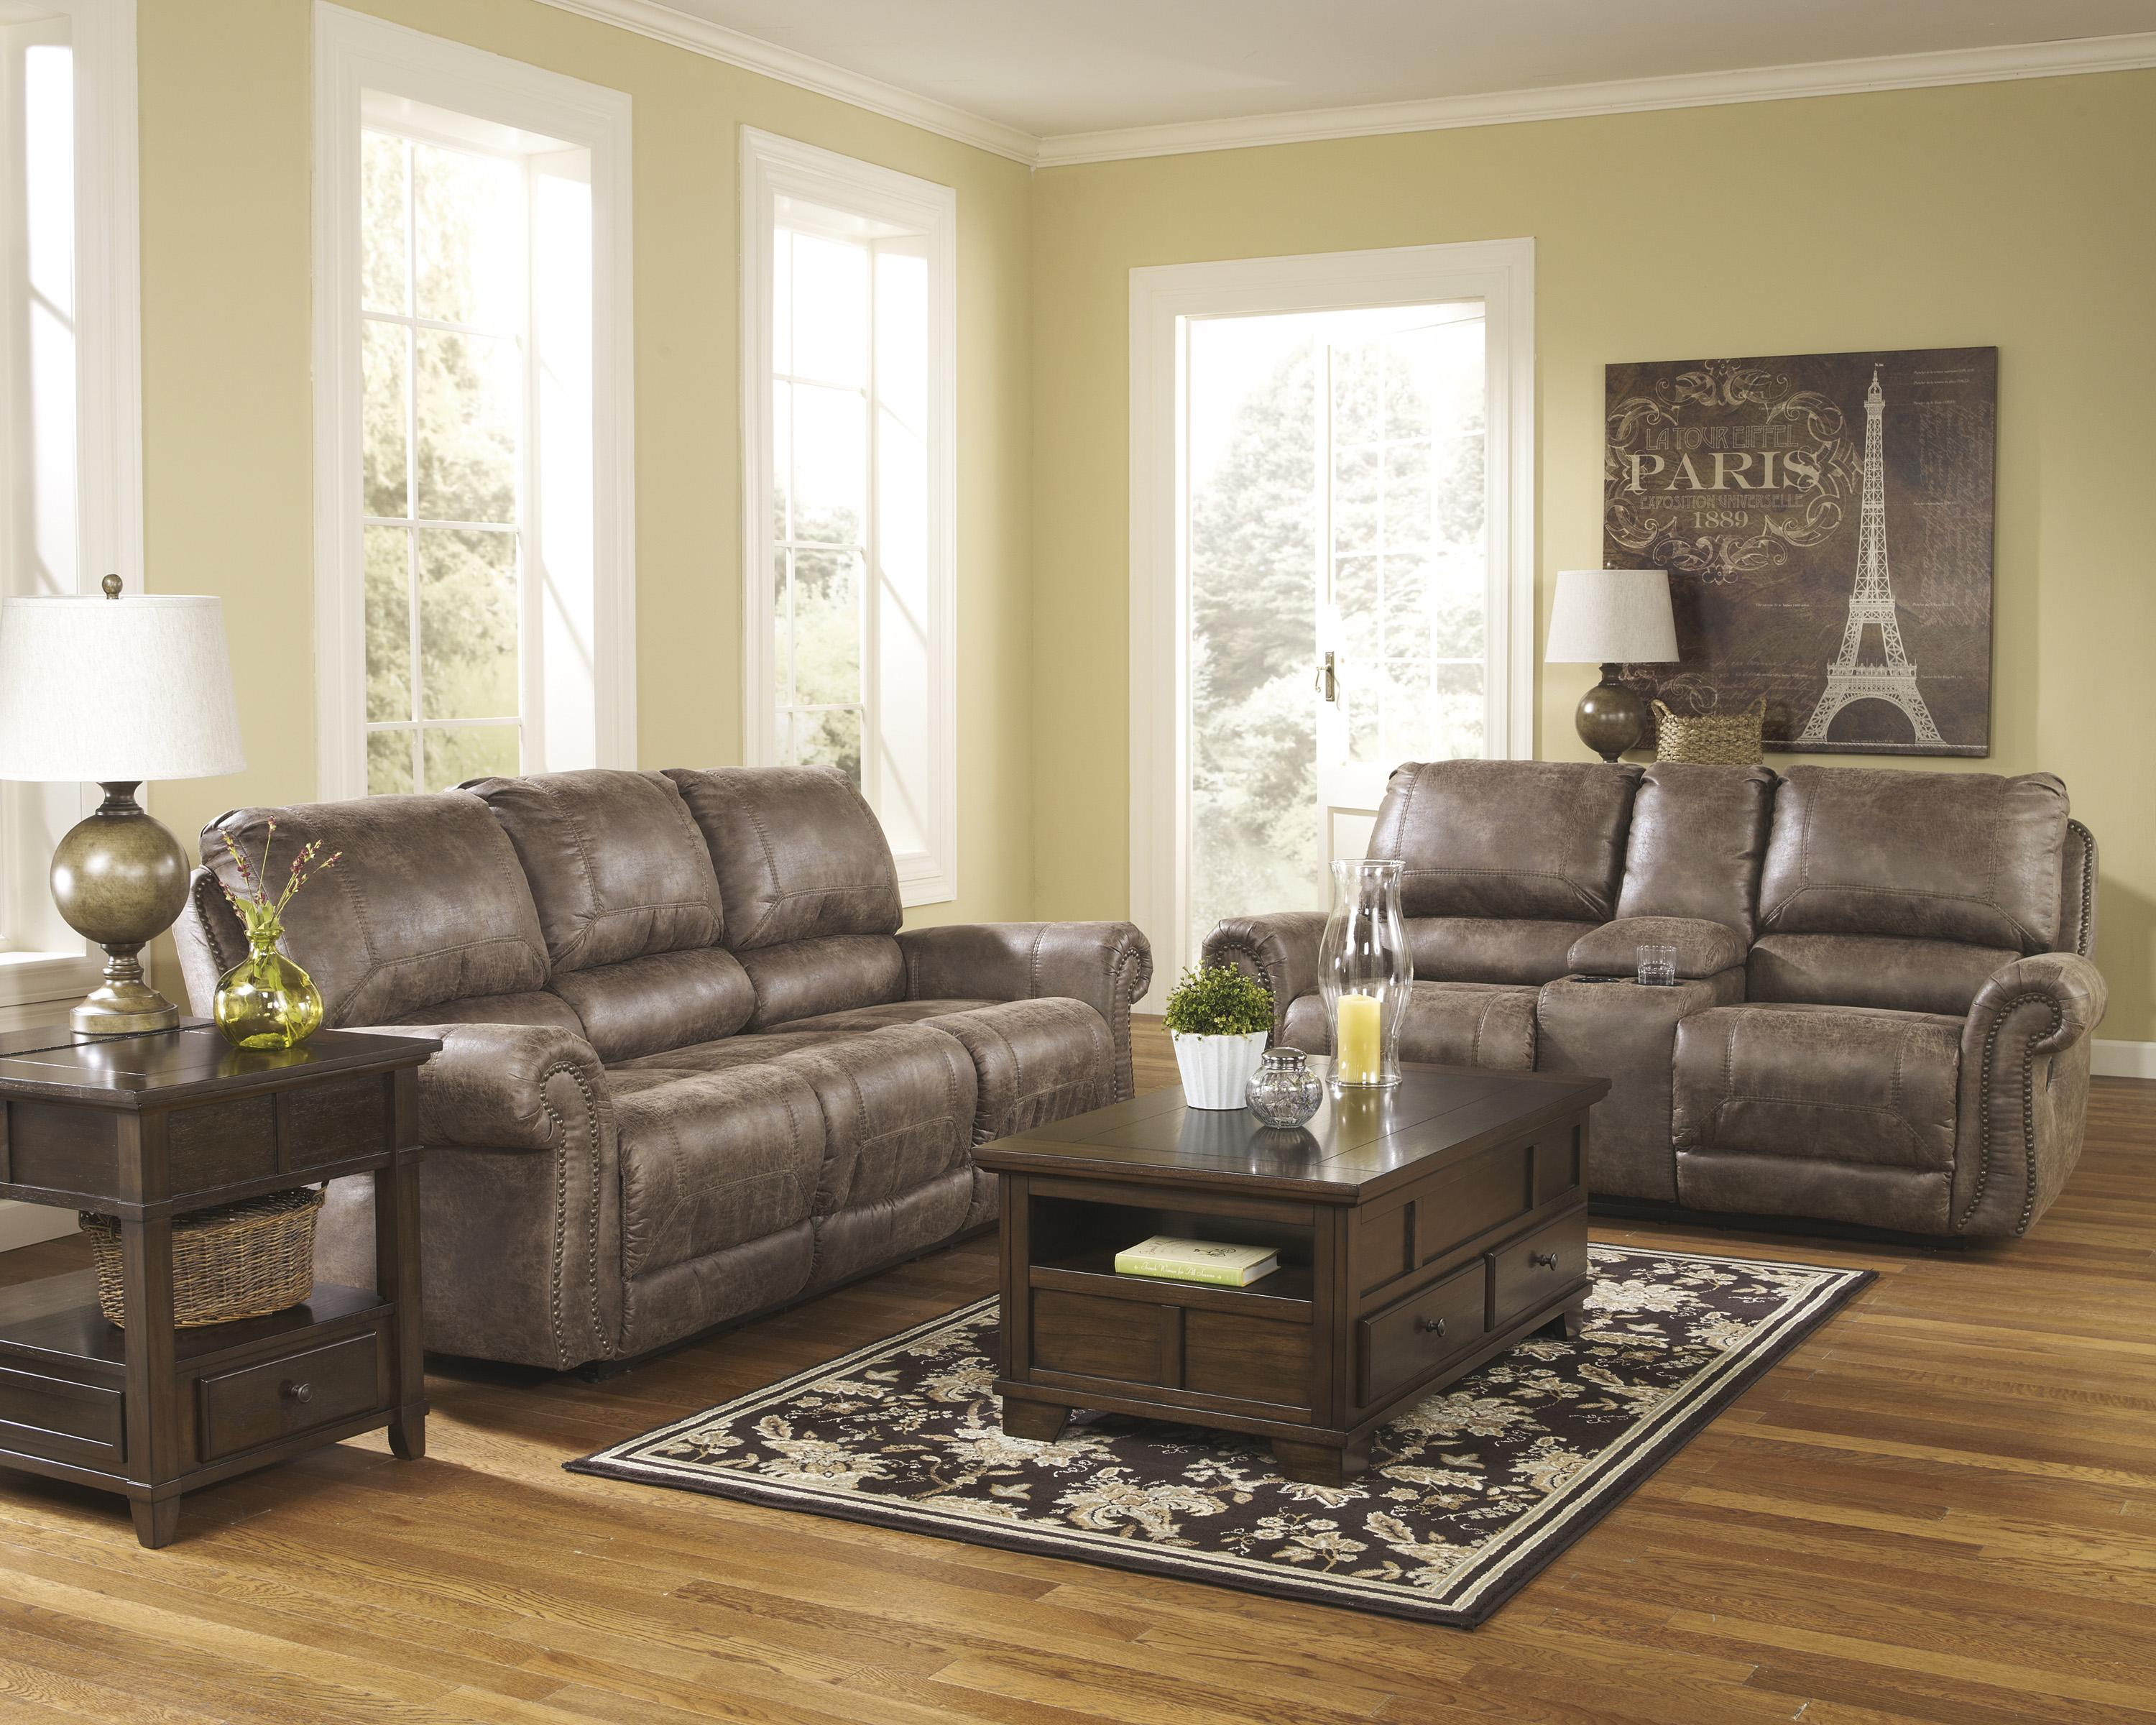 Signature Design by Ashley Oberson - Gunsmoke Reclining Living Room Group - Item Number: 74100 Living Room Group 2